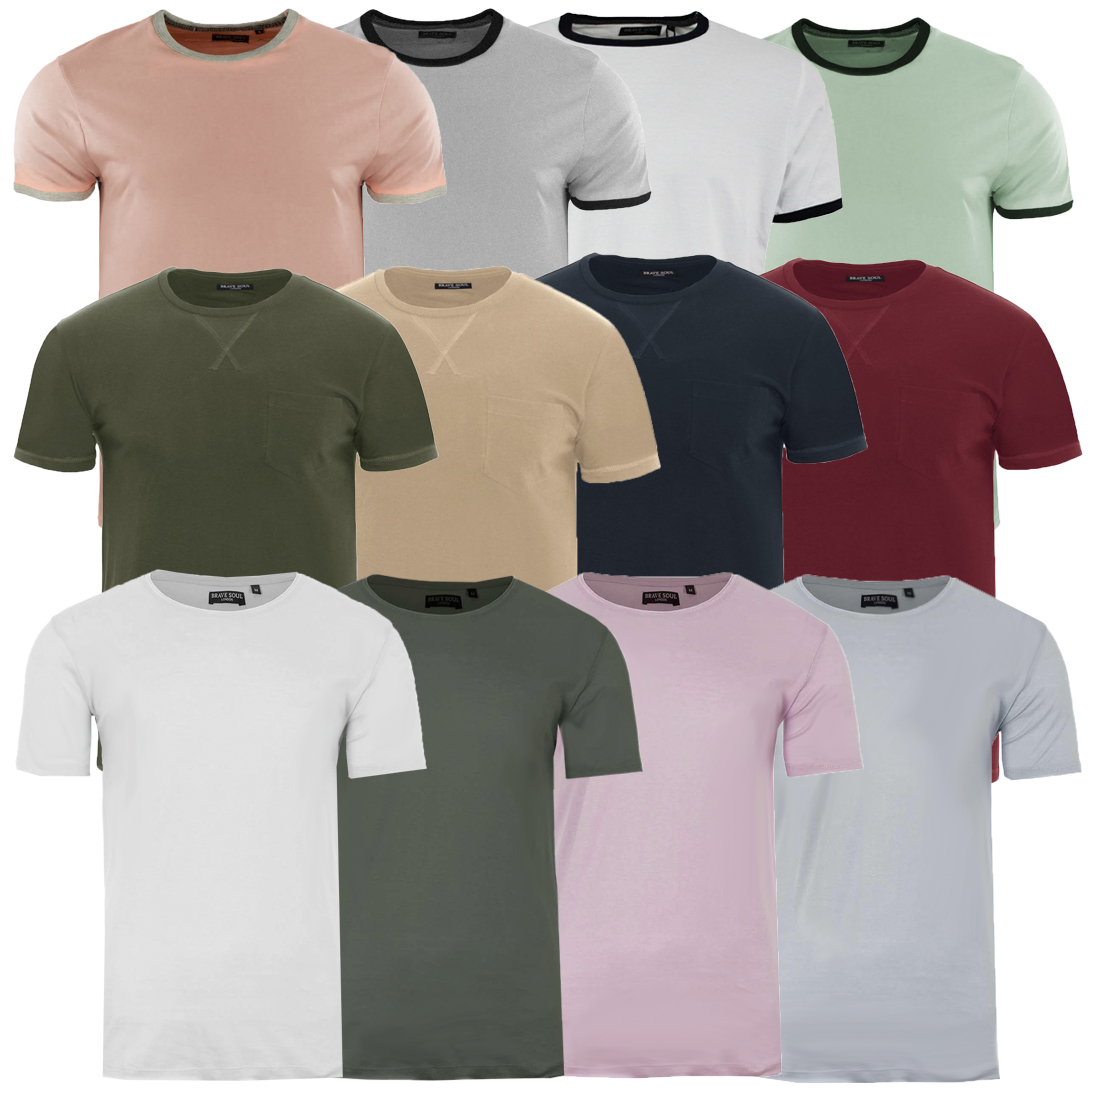 bf135c363cf Details about Mens Brave Soul T-Shirts Soft Cotton Rich Summer Tee Shirt Tee  Top